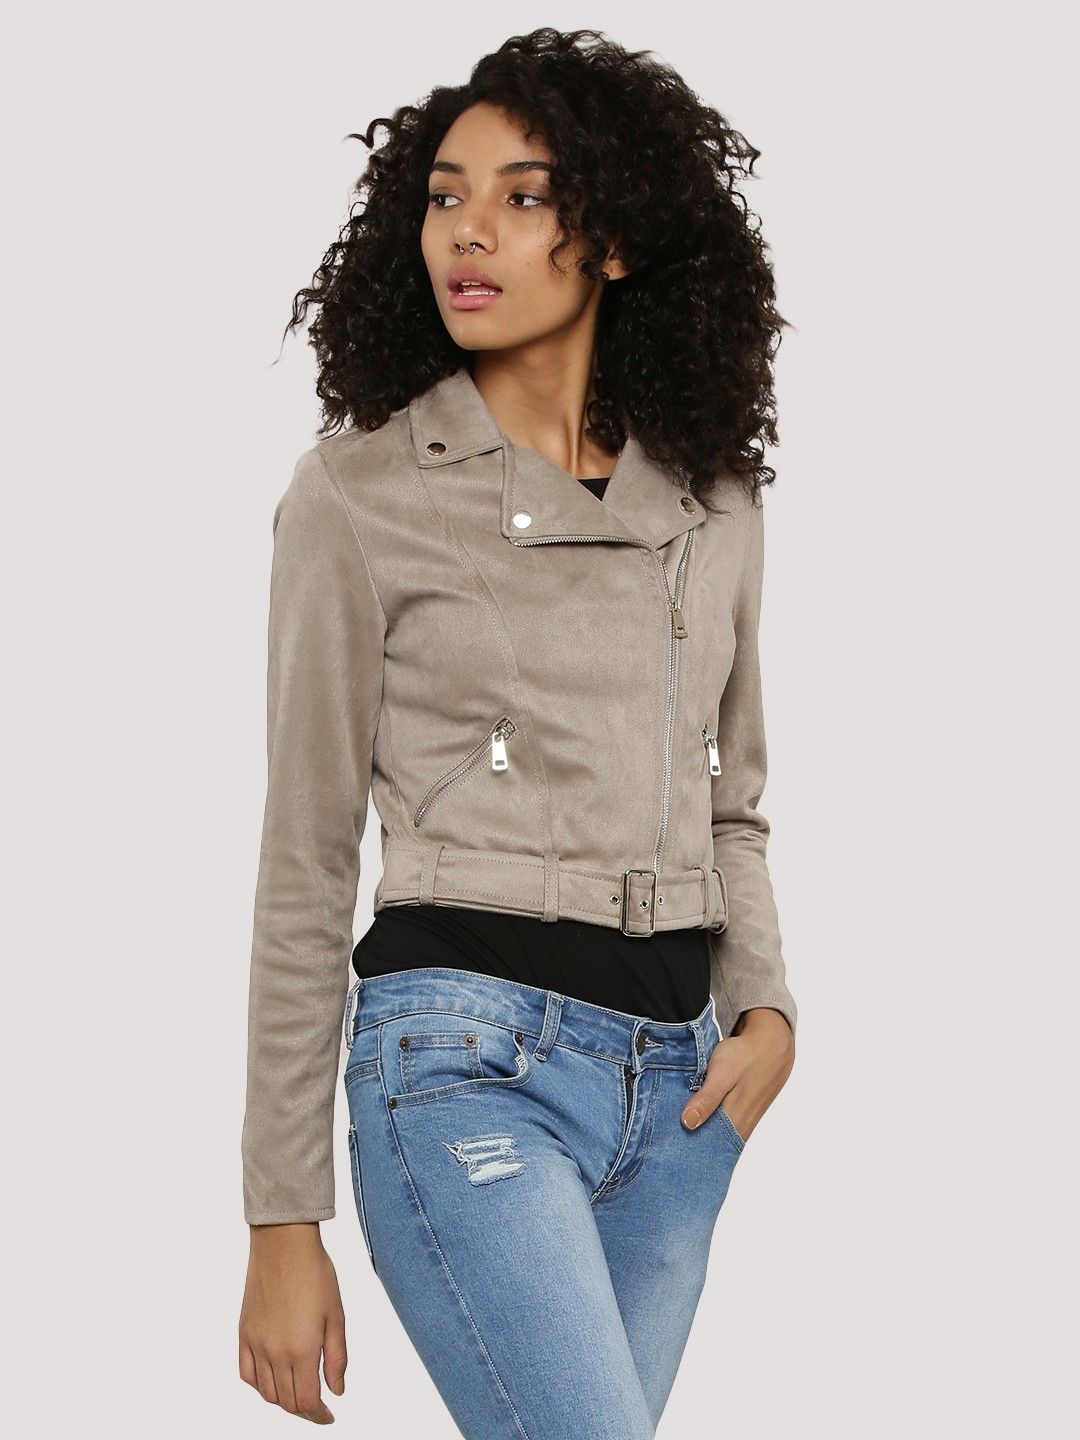 Find great deals on eBay for new look jackets. Shop with confidence.